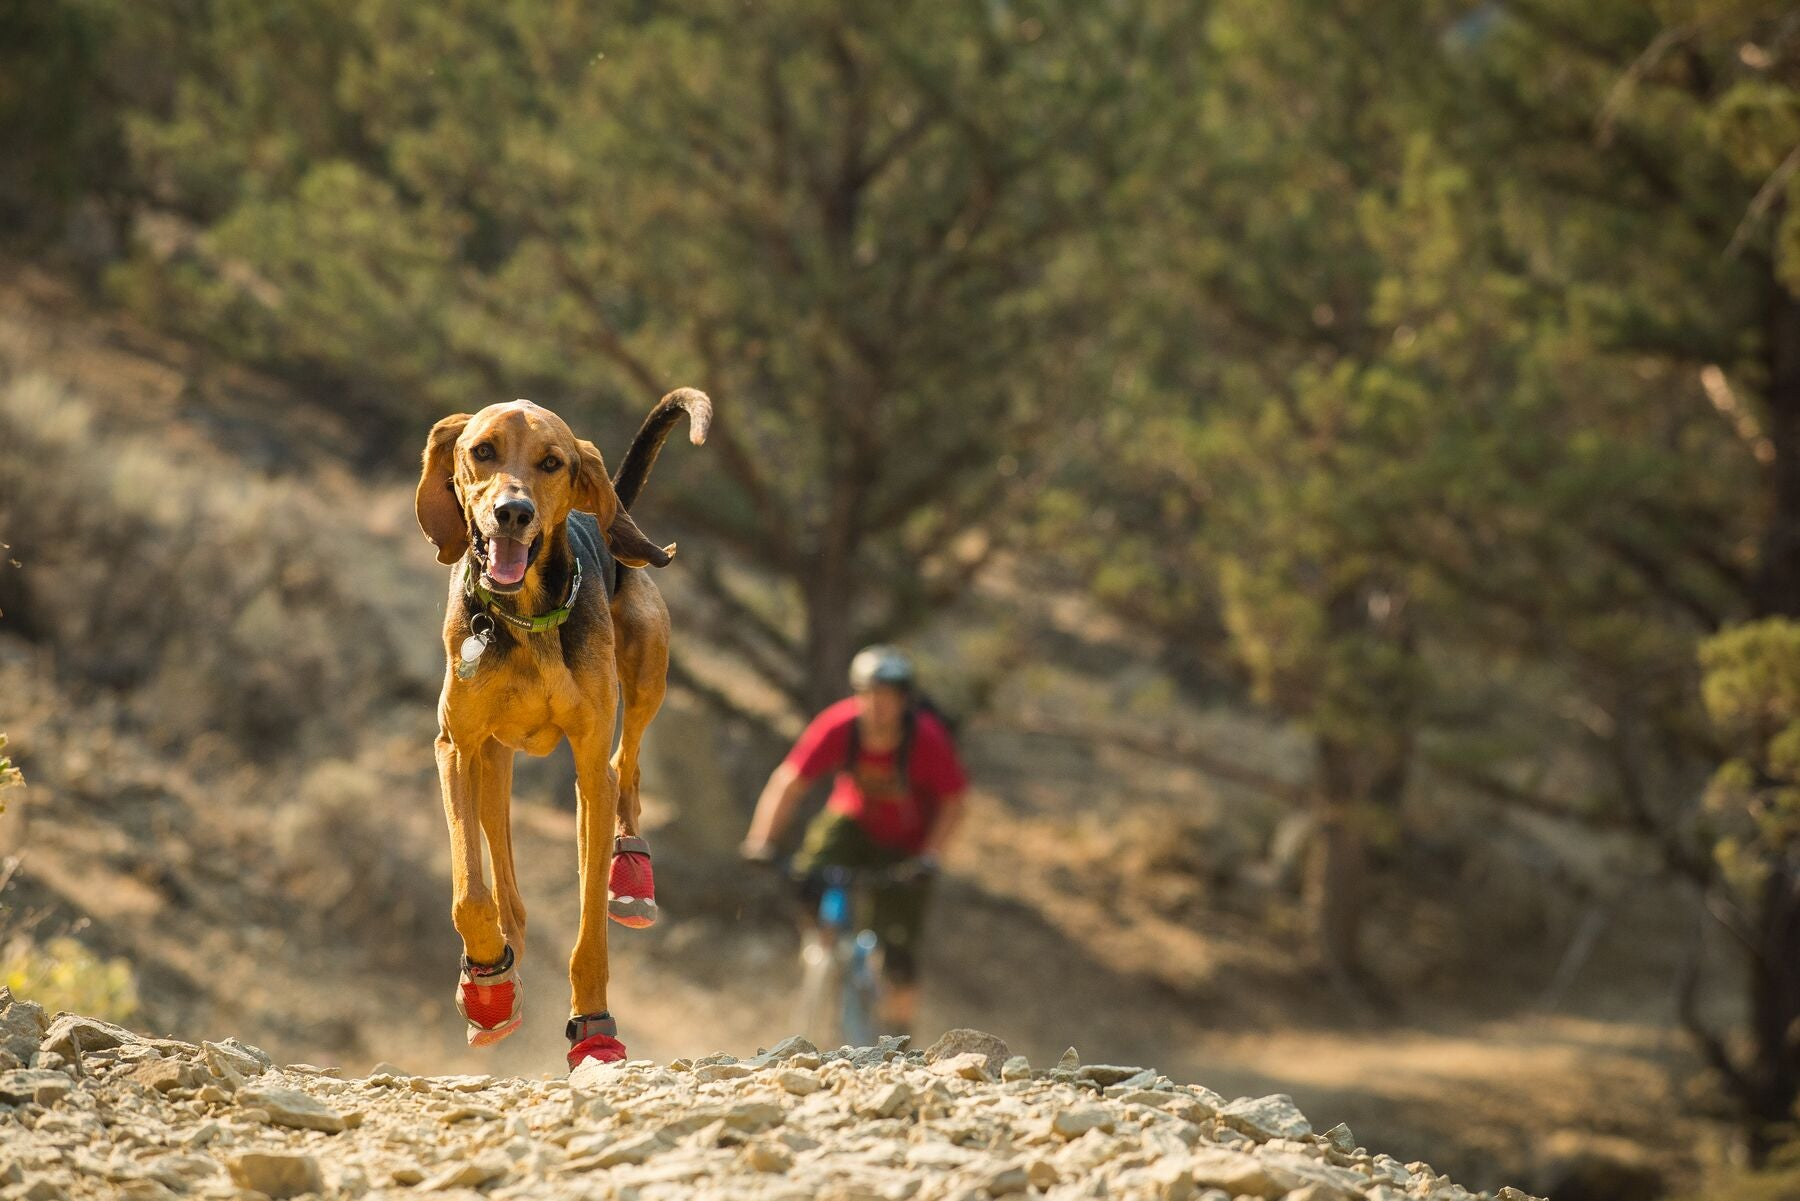 Dog wearing dog boots on hot rocky trail with person mountain biking in background